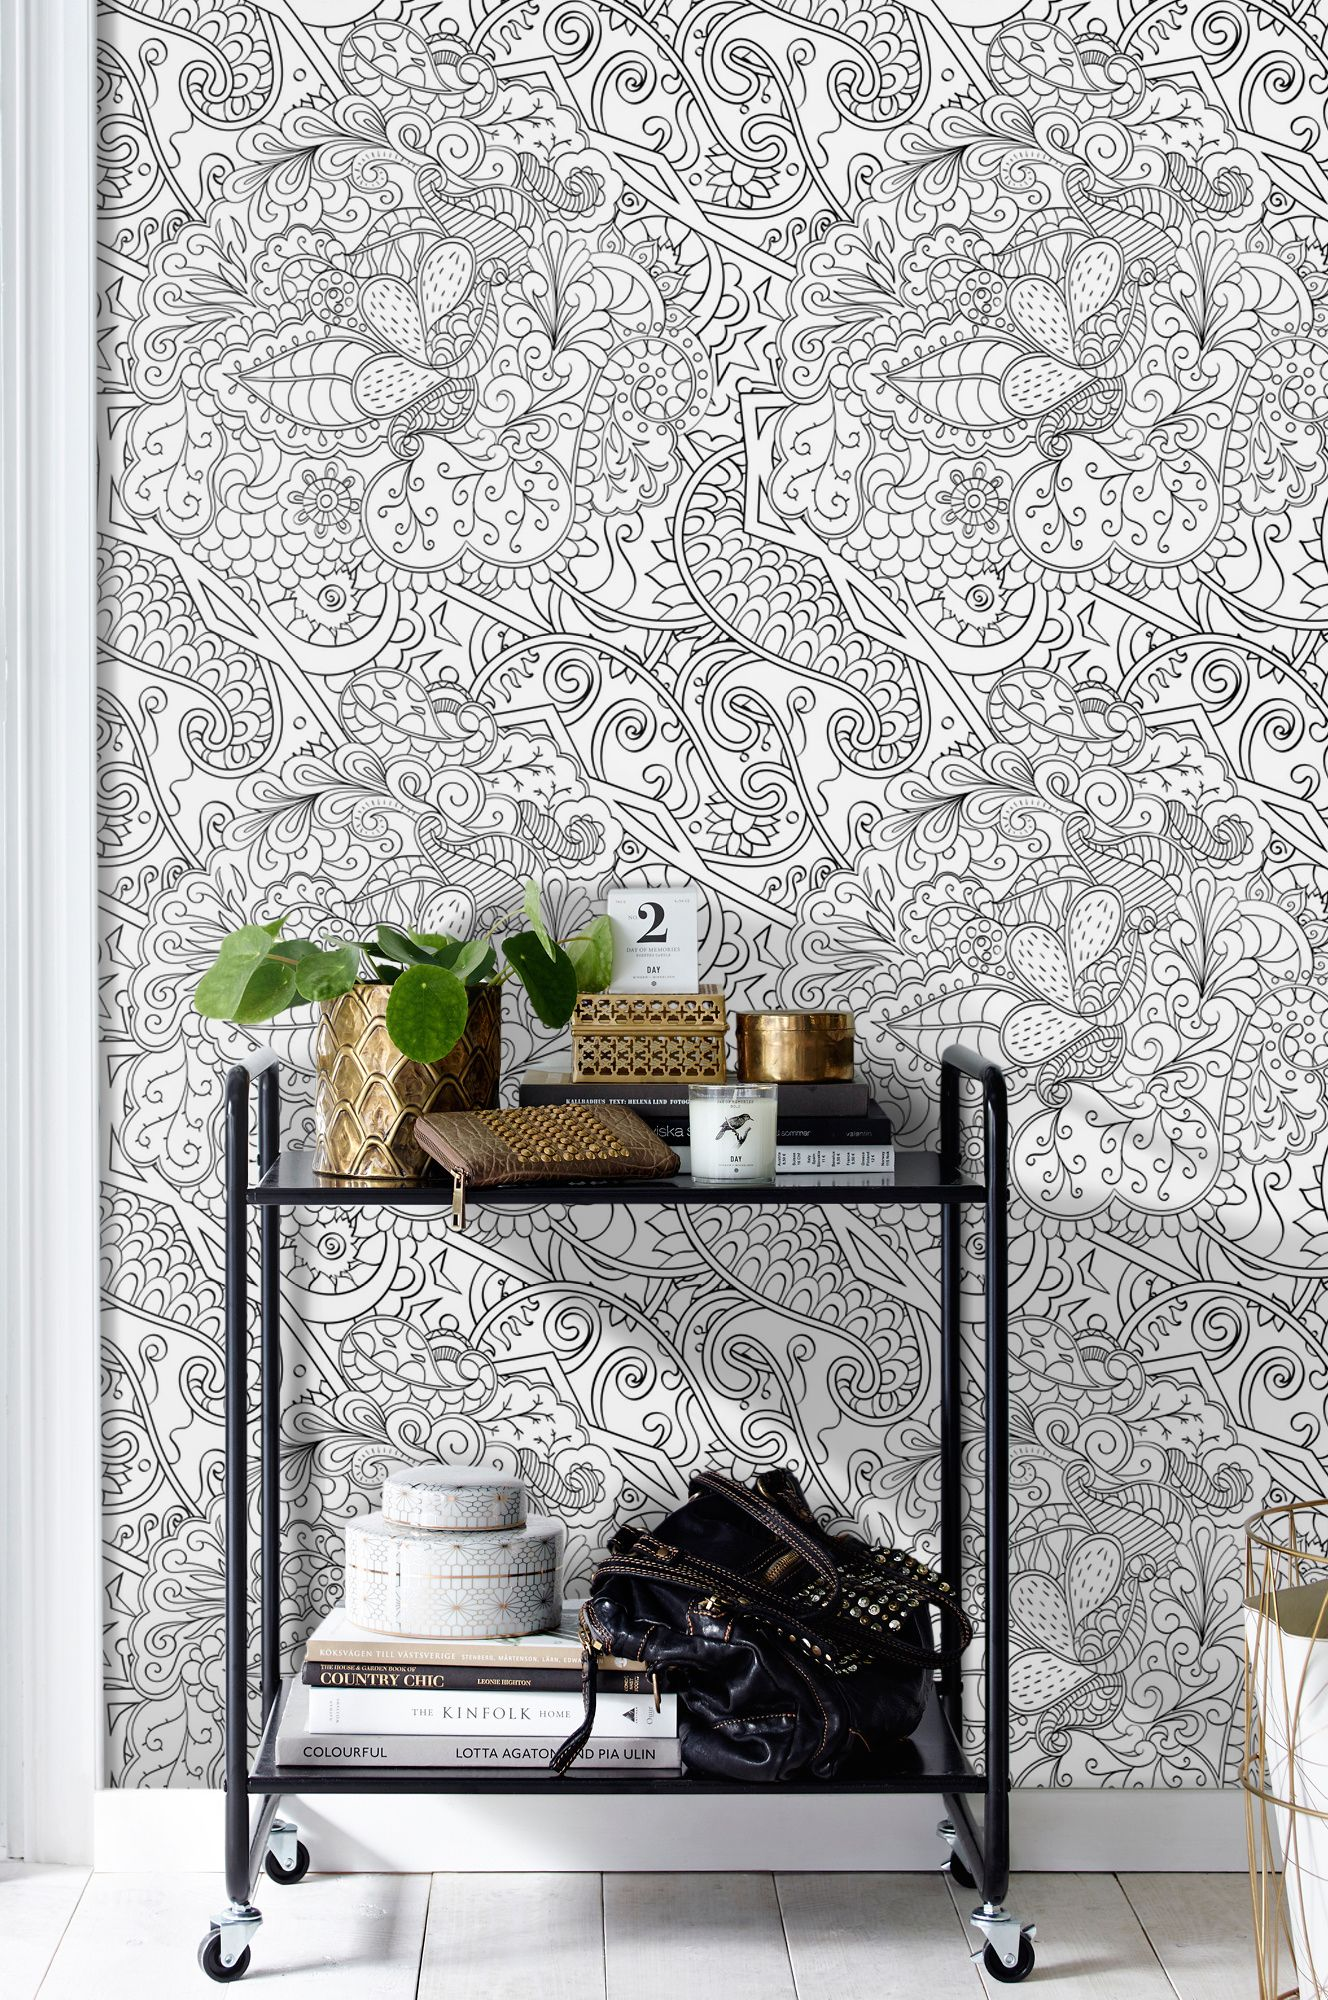 Persian Colouring Book Removable Wallpaper | Abstract wall murals ...